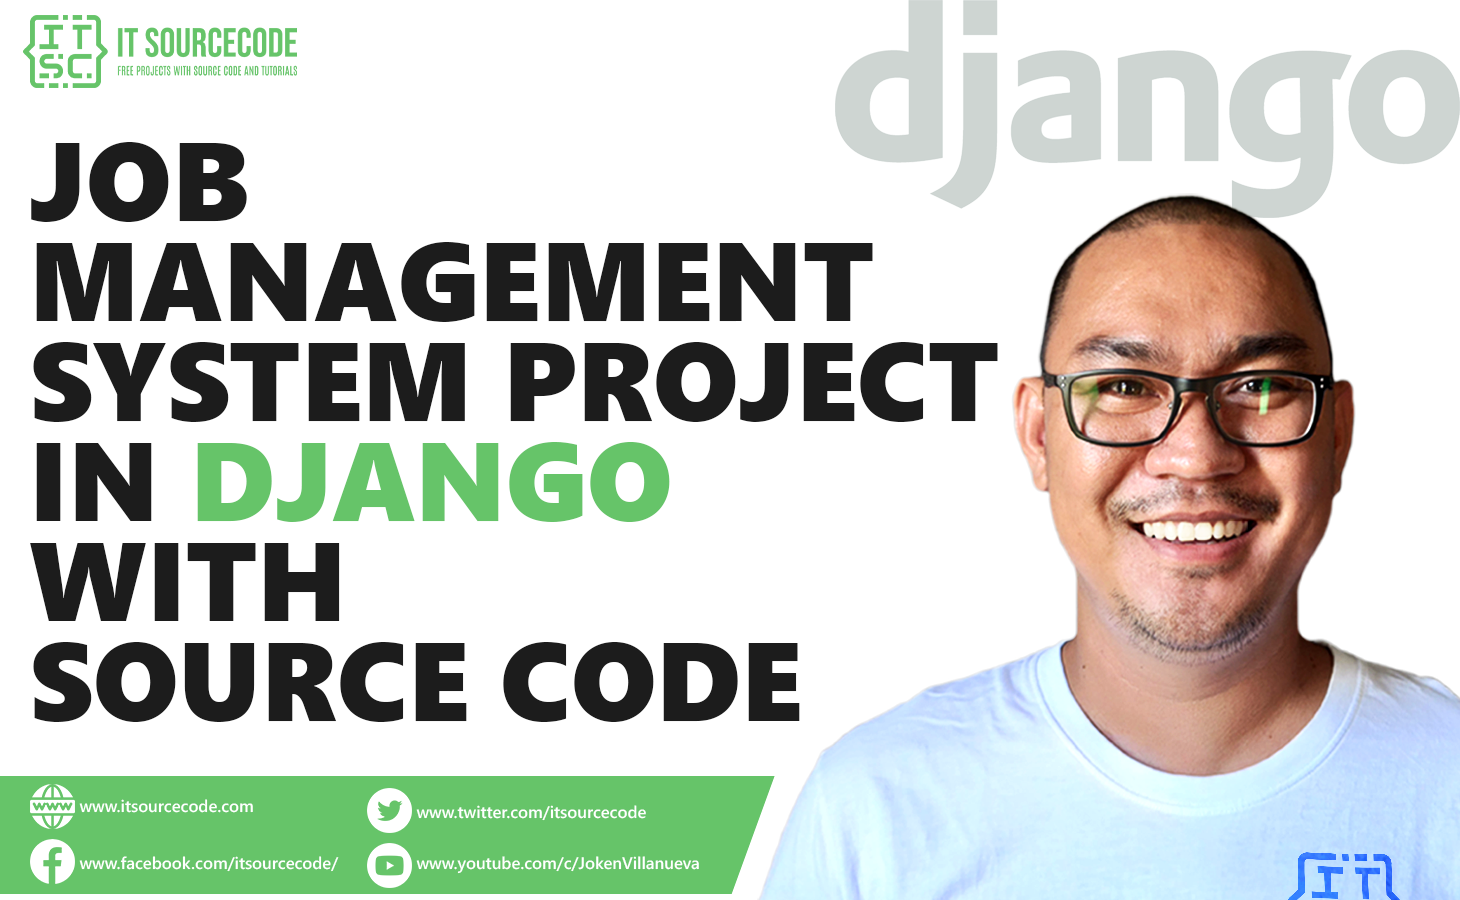 Job Management System Project in Django with Source Code